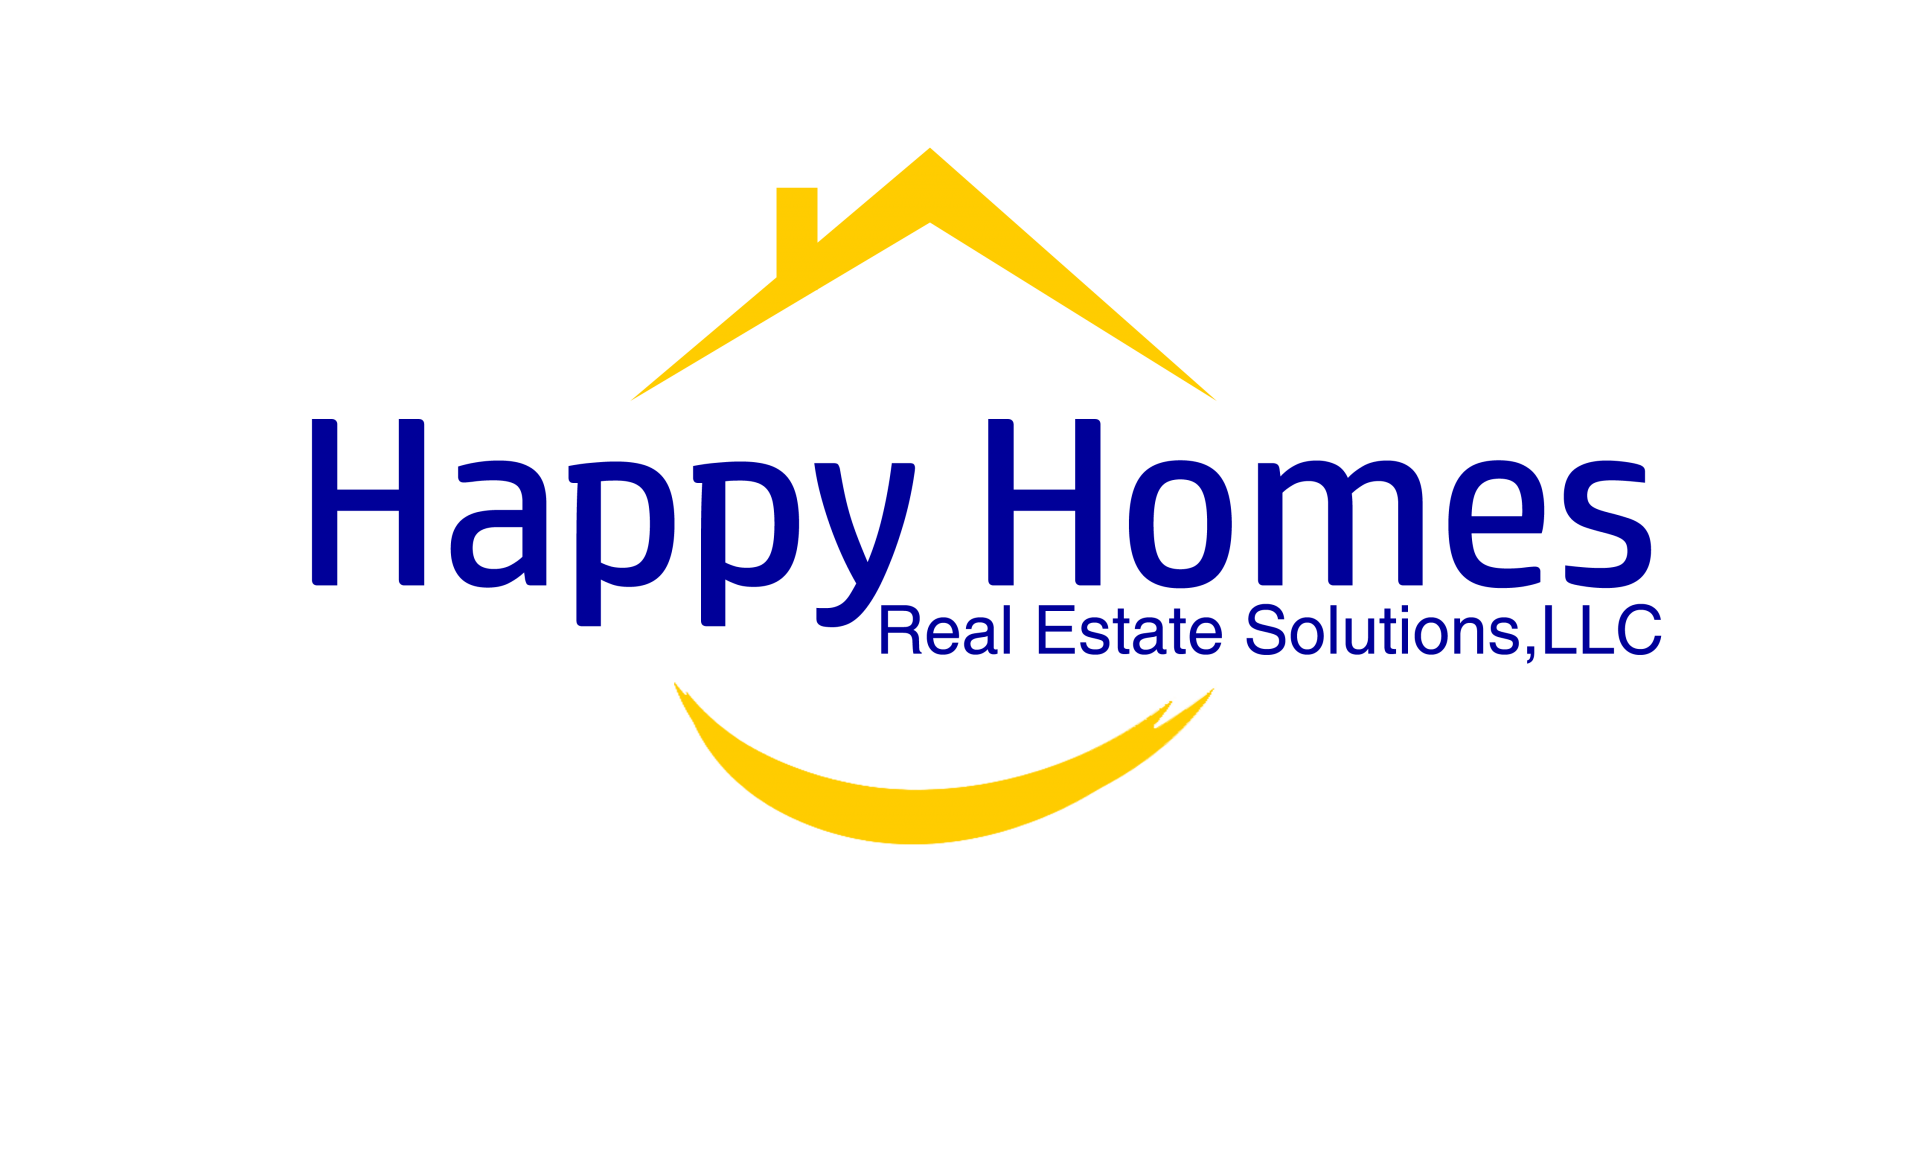 Happy Homes Real Estate Solutions, LLC  logo